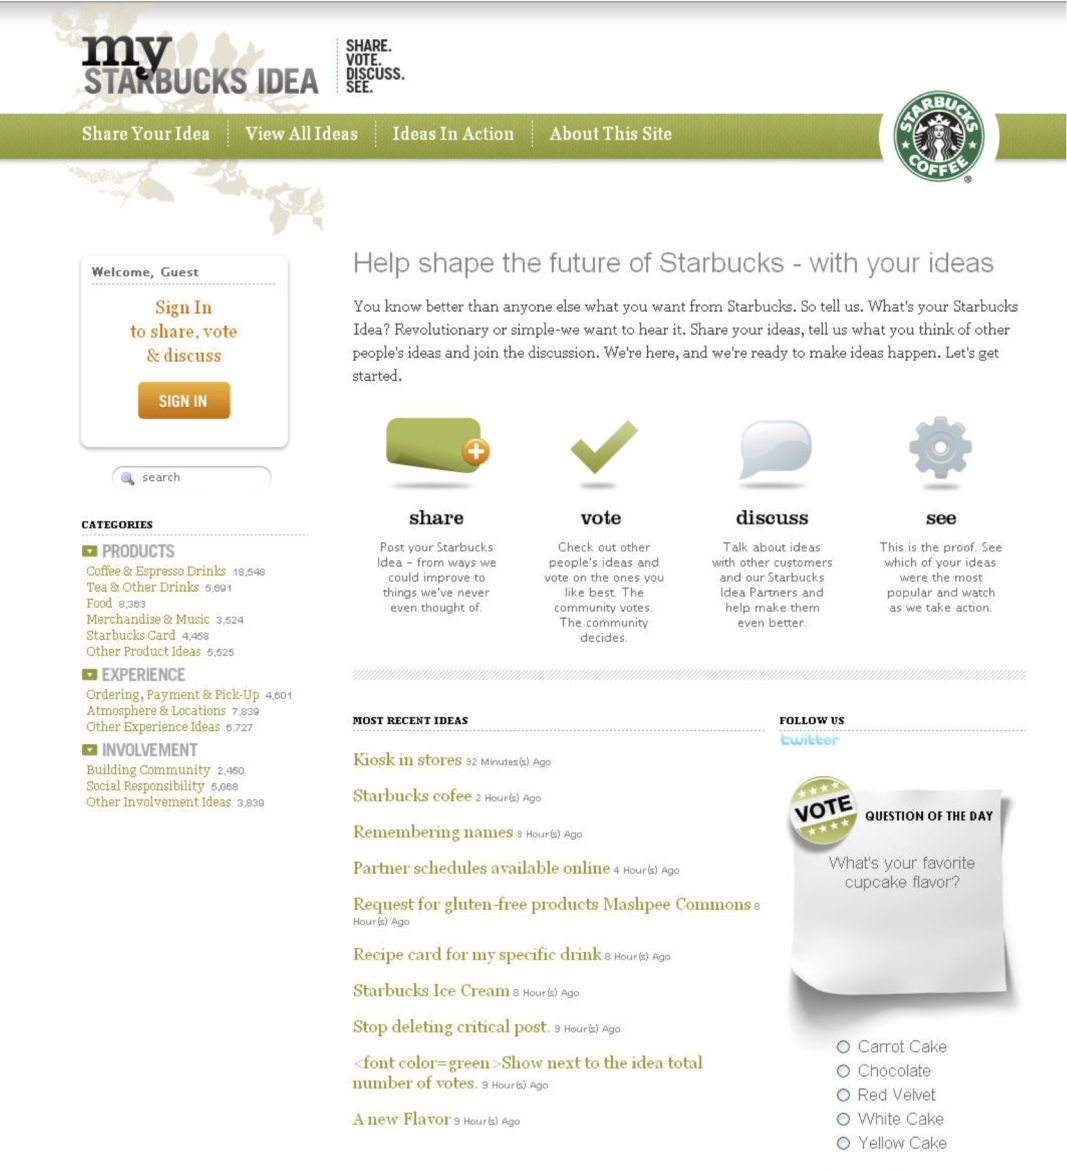 mystarbucksidea: then and now - has anything changed